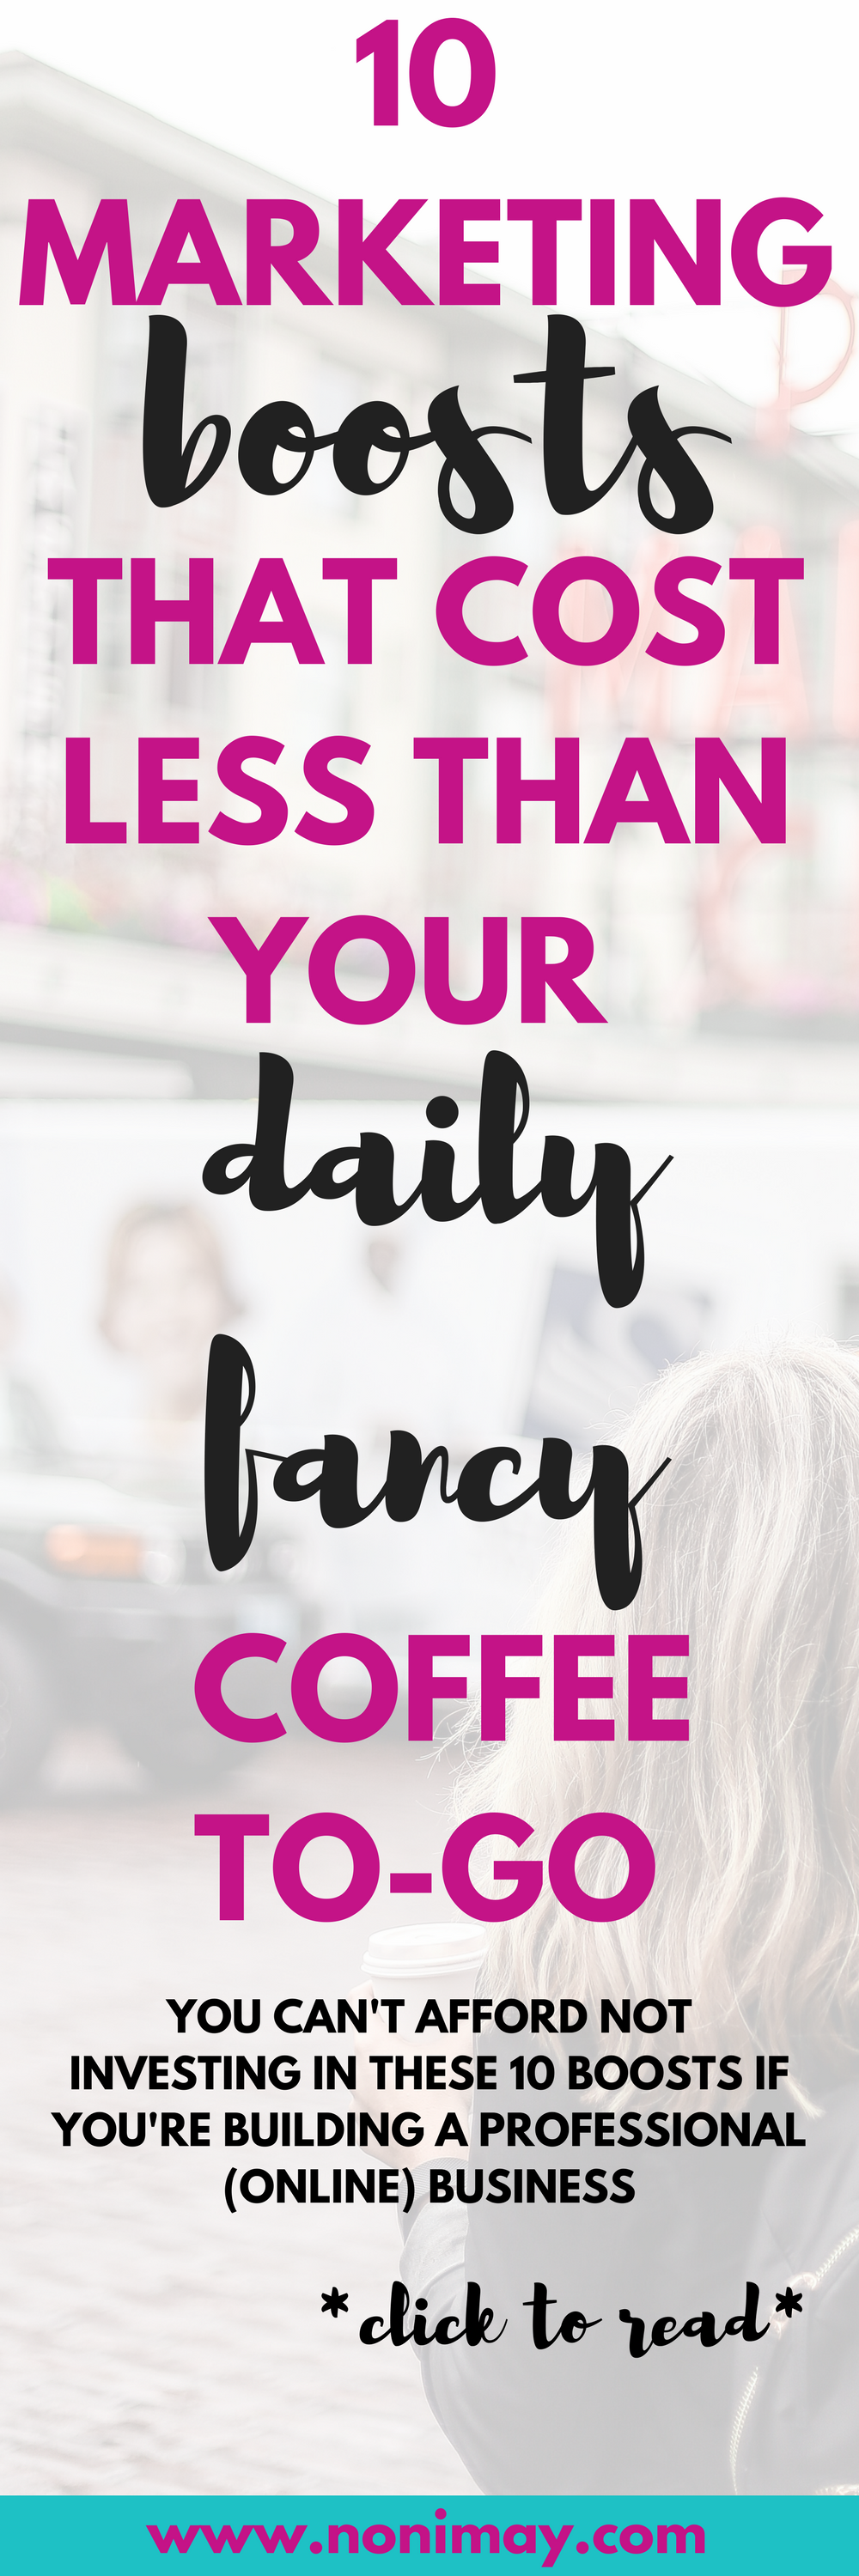 10 marketing boosts that cost less than your daily coffee to-go